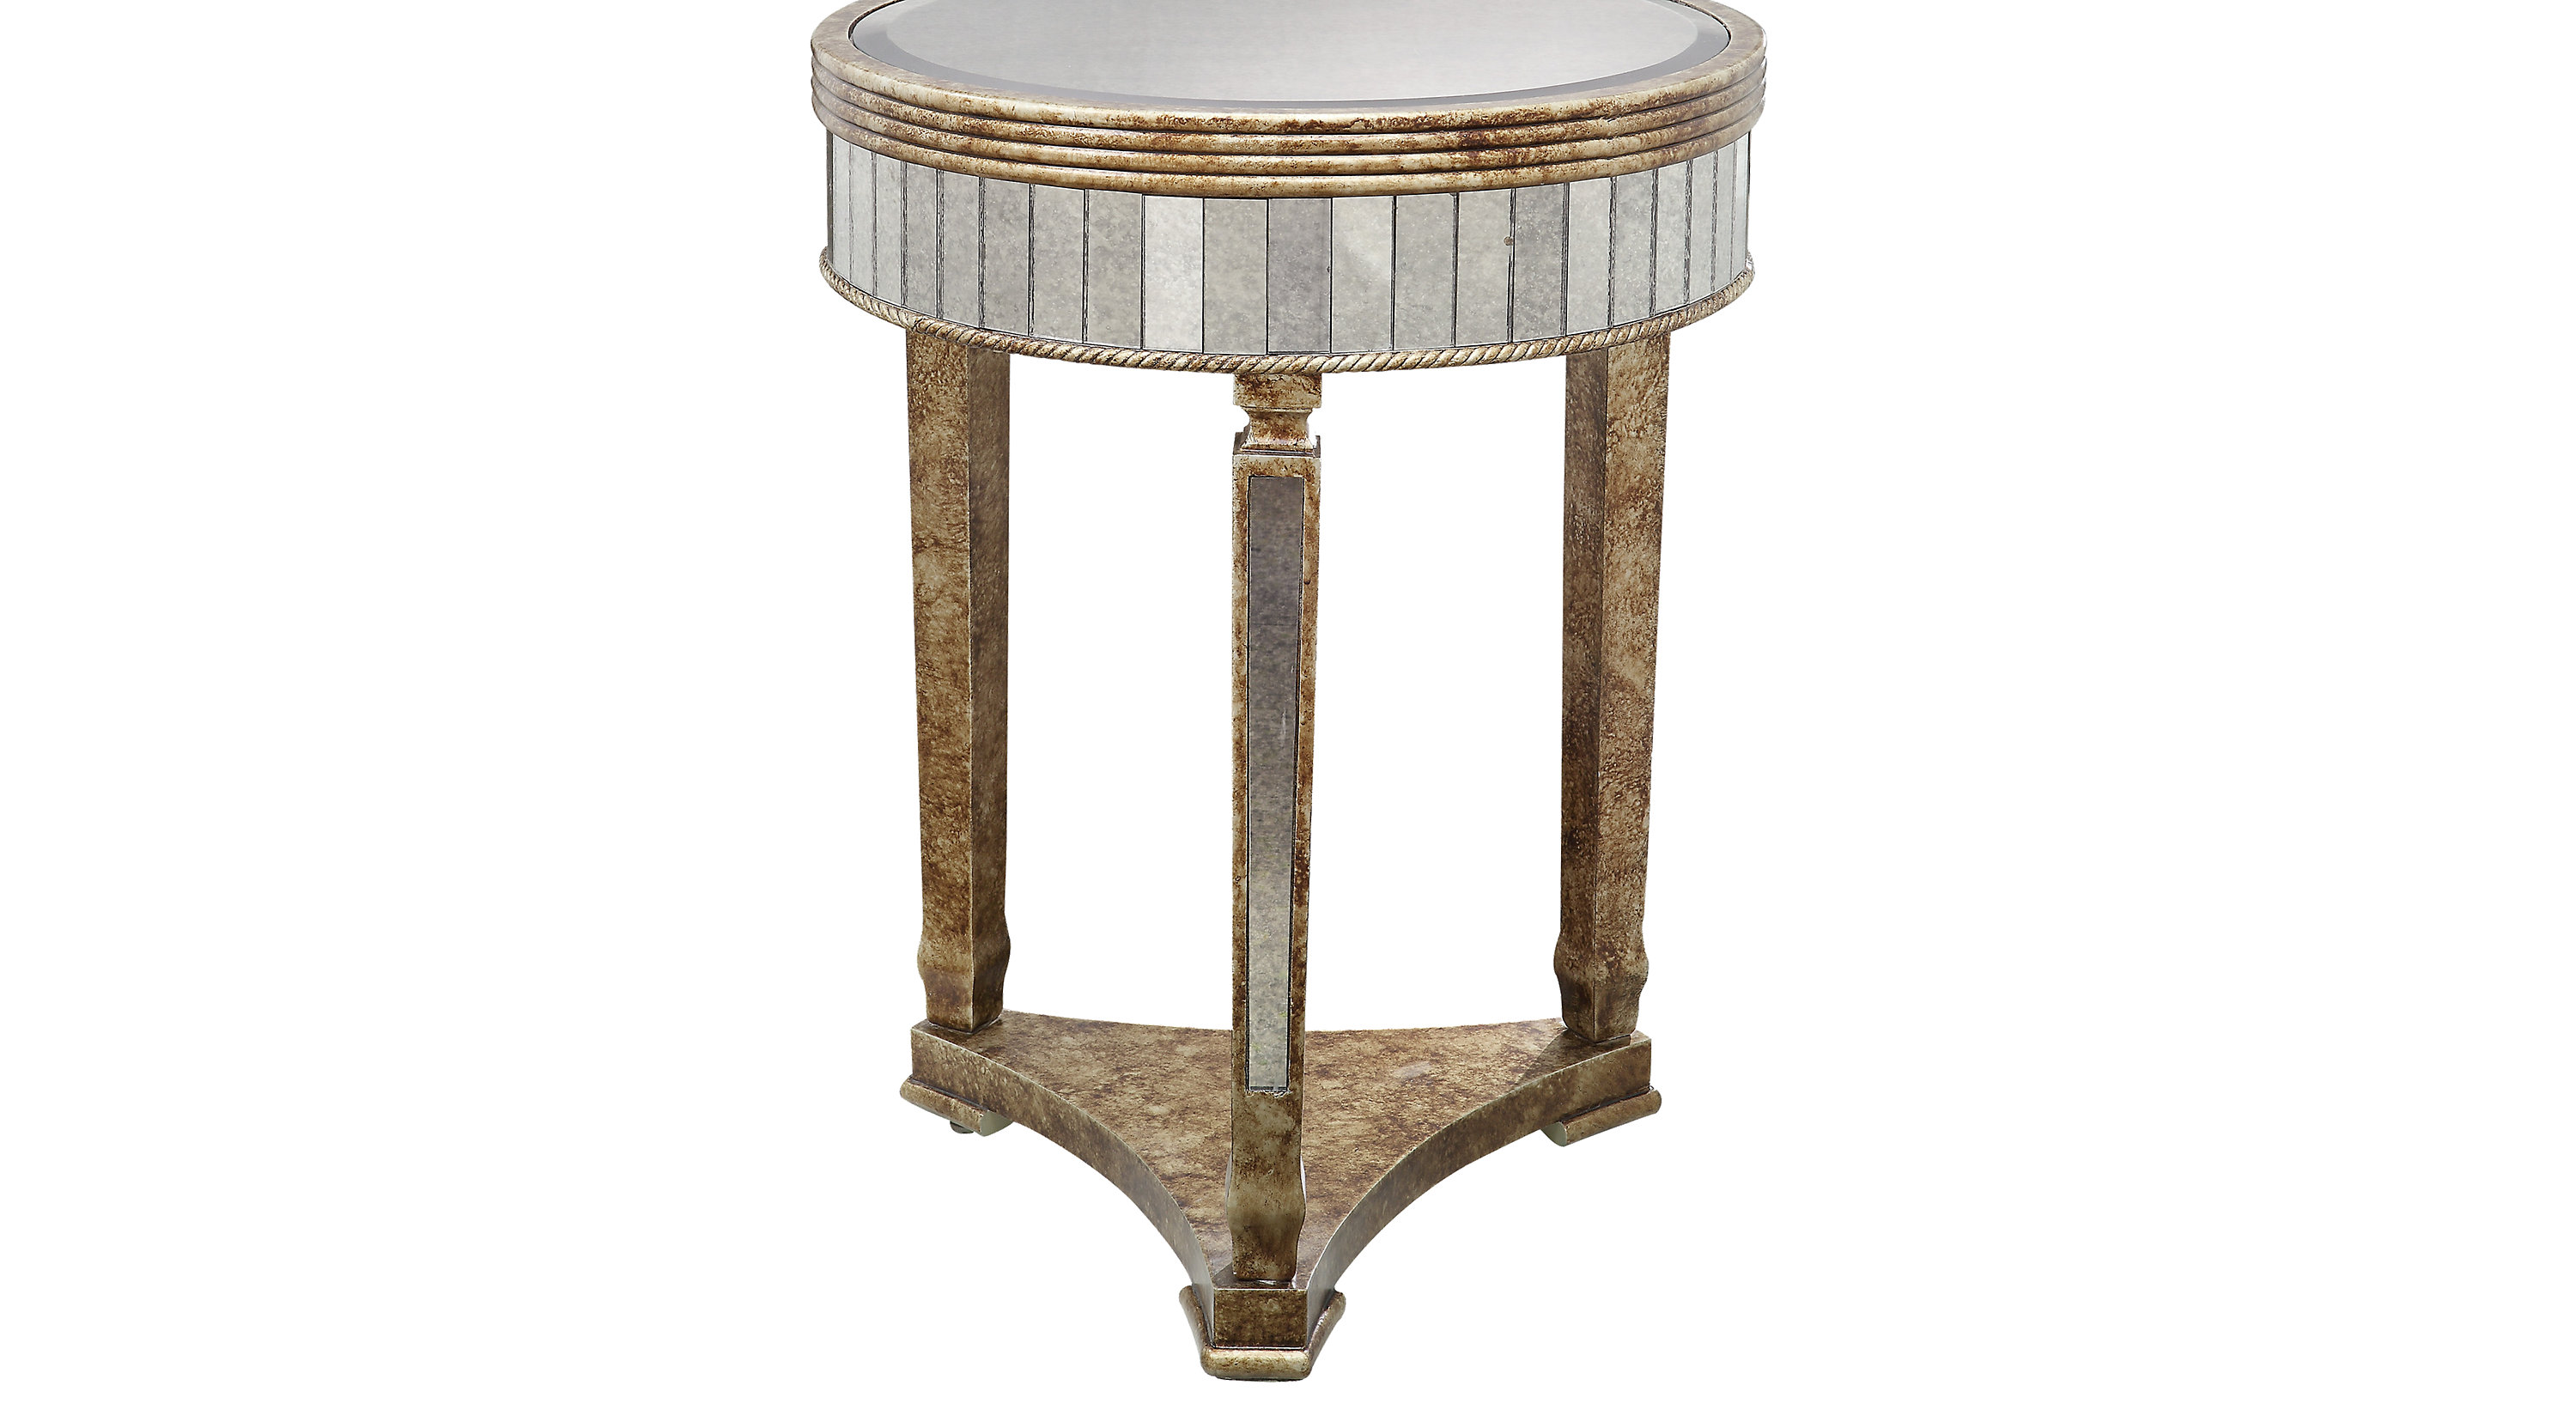 elevonne gold accent table contemporary with drawer side cabinet navy blue lamp shade short floor lamps white and silver coffee real marble top decor unique end tables dining